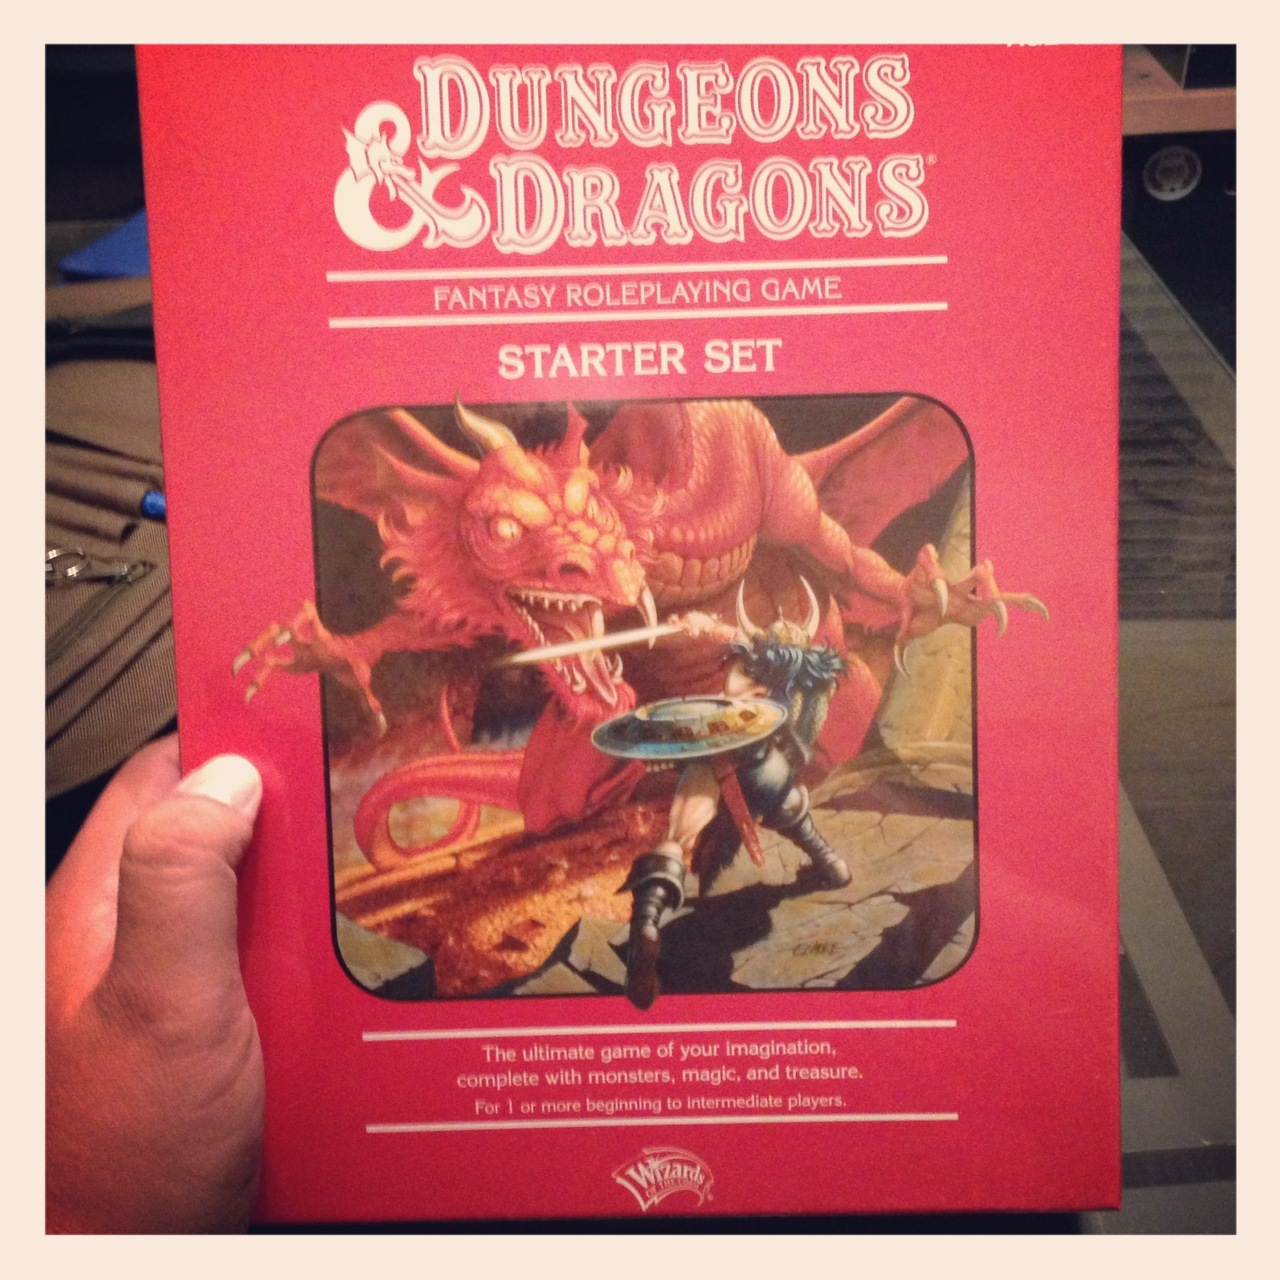 So I haven't figured when I'm going to squeeze in enough time to read all the manuals contained within my D&D Red Box, but it's something I'm looking forward to doing this weekend. If all goes as planned, I'll get to throw down in my 2nd organized game on the 1st of December. I hope to know enough about the game to not slow down creative developments.